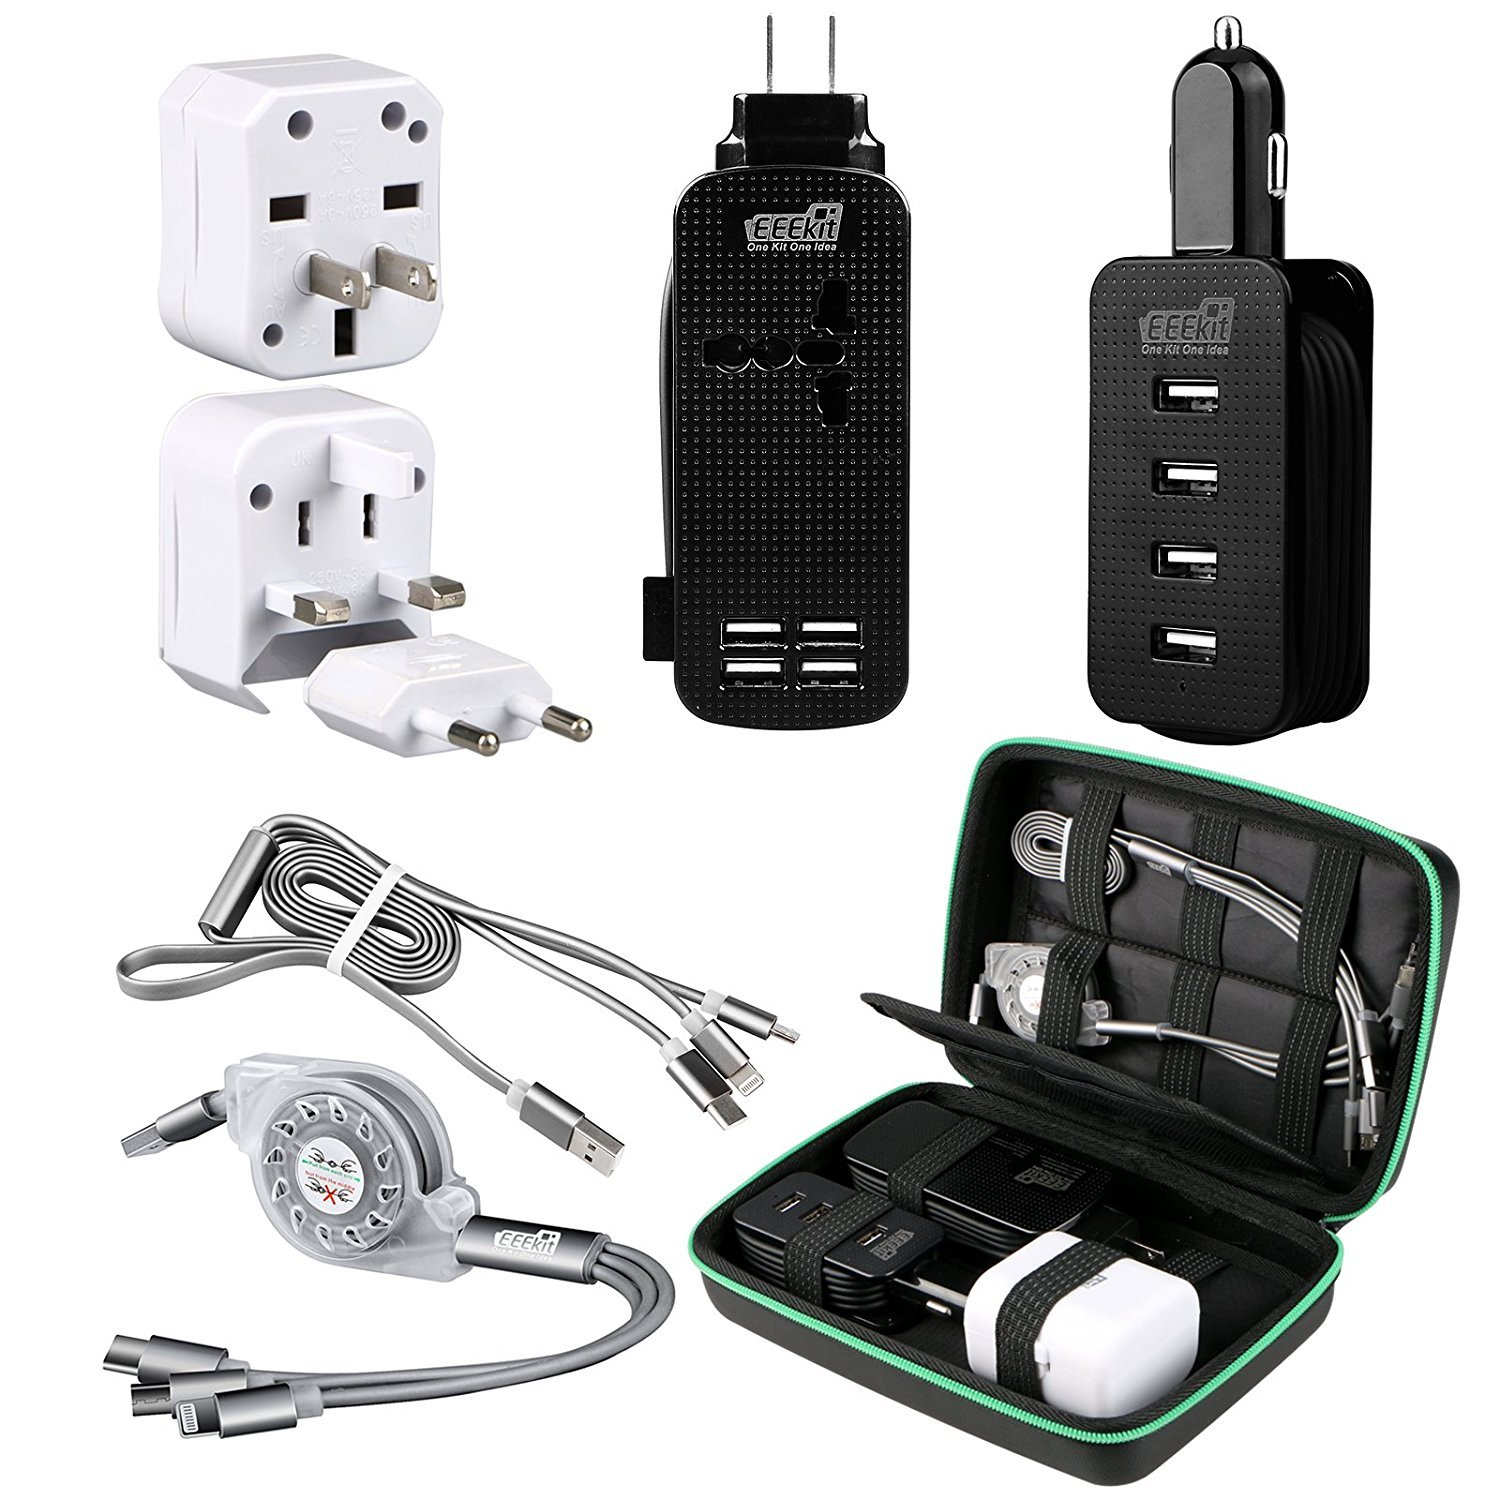 EEEKit All in One Travel Charger Kit for Smart Phones, Accessories Organizer Bag, 4-Port USB Charger+Outlet Power Strip, Car Charger, International AC Wall Outlet Adapter, Retractable USB Multi-Cable